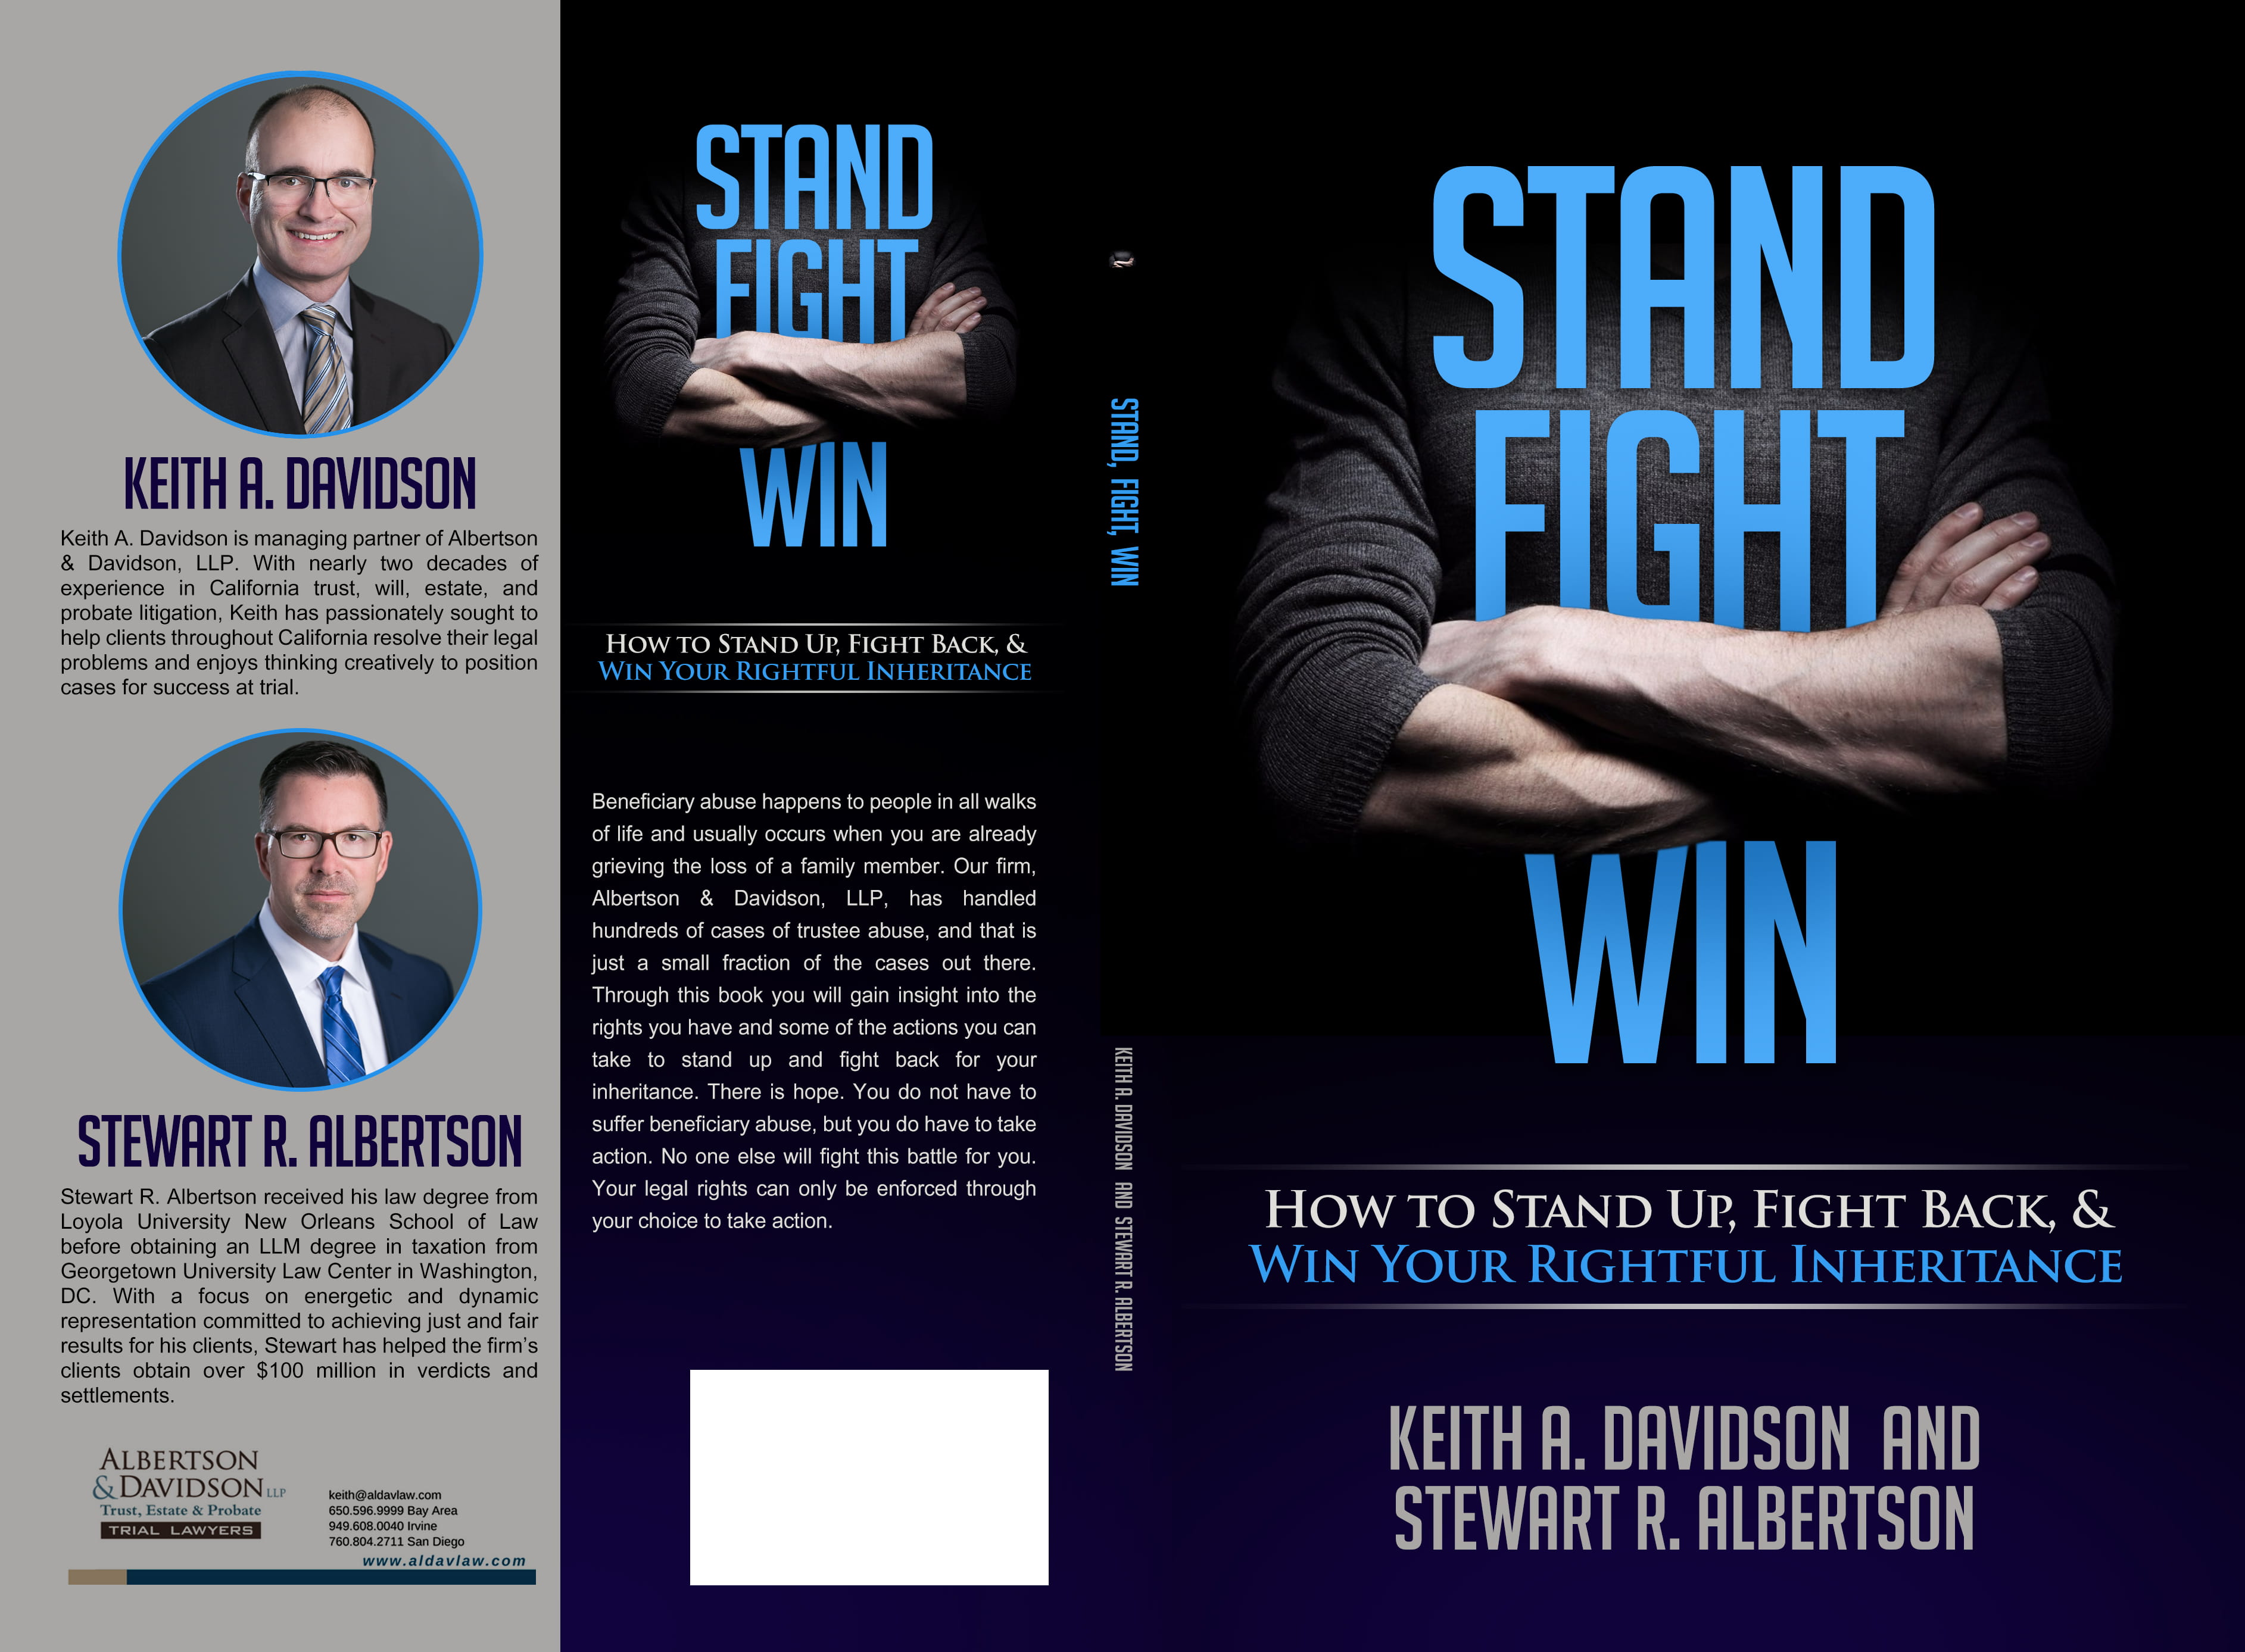 how to stand up, fight back & wind your rightful inheritance